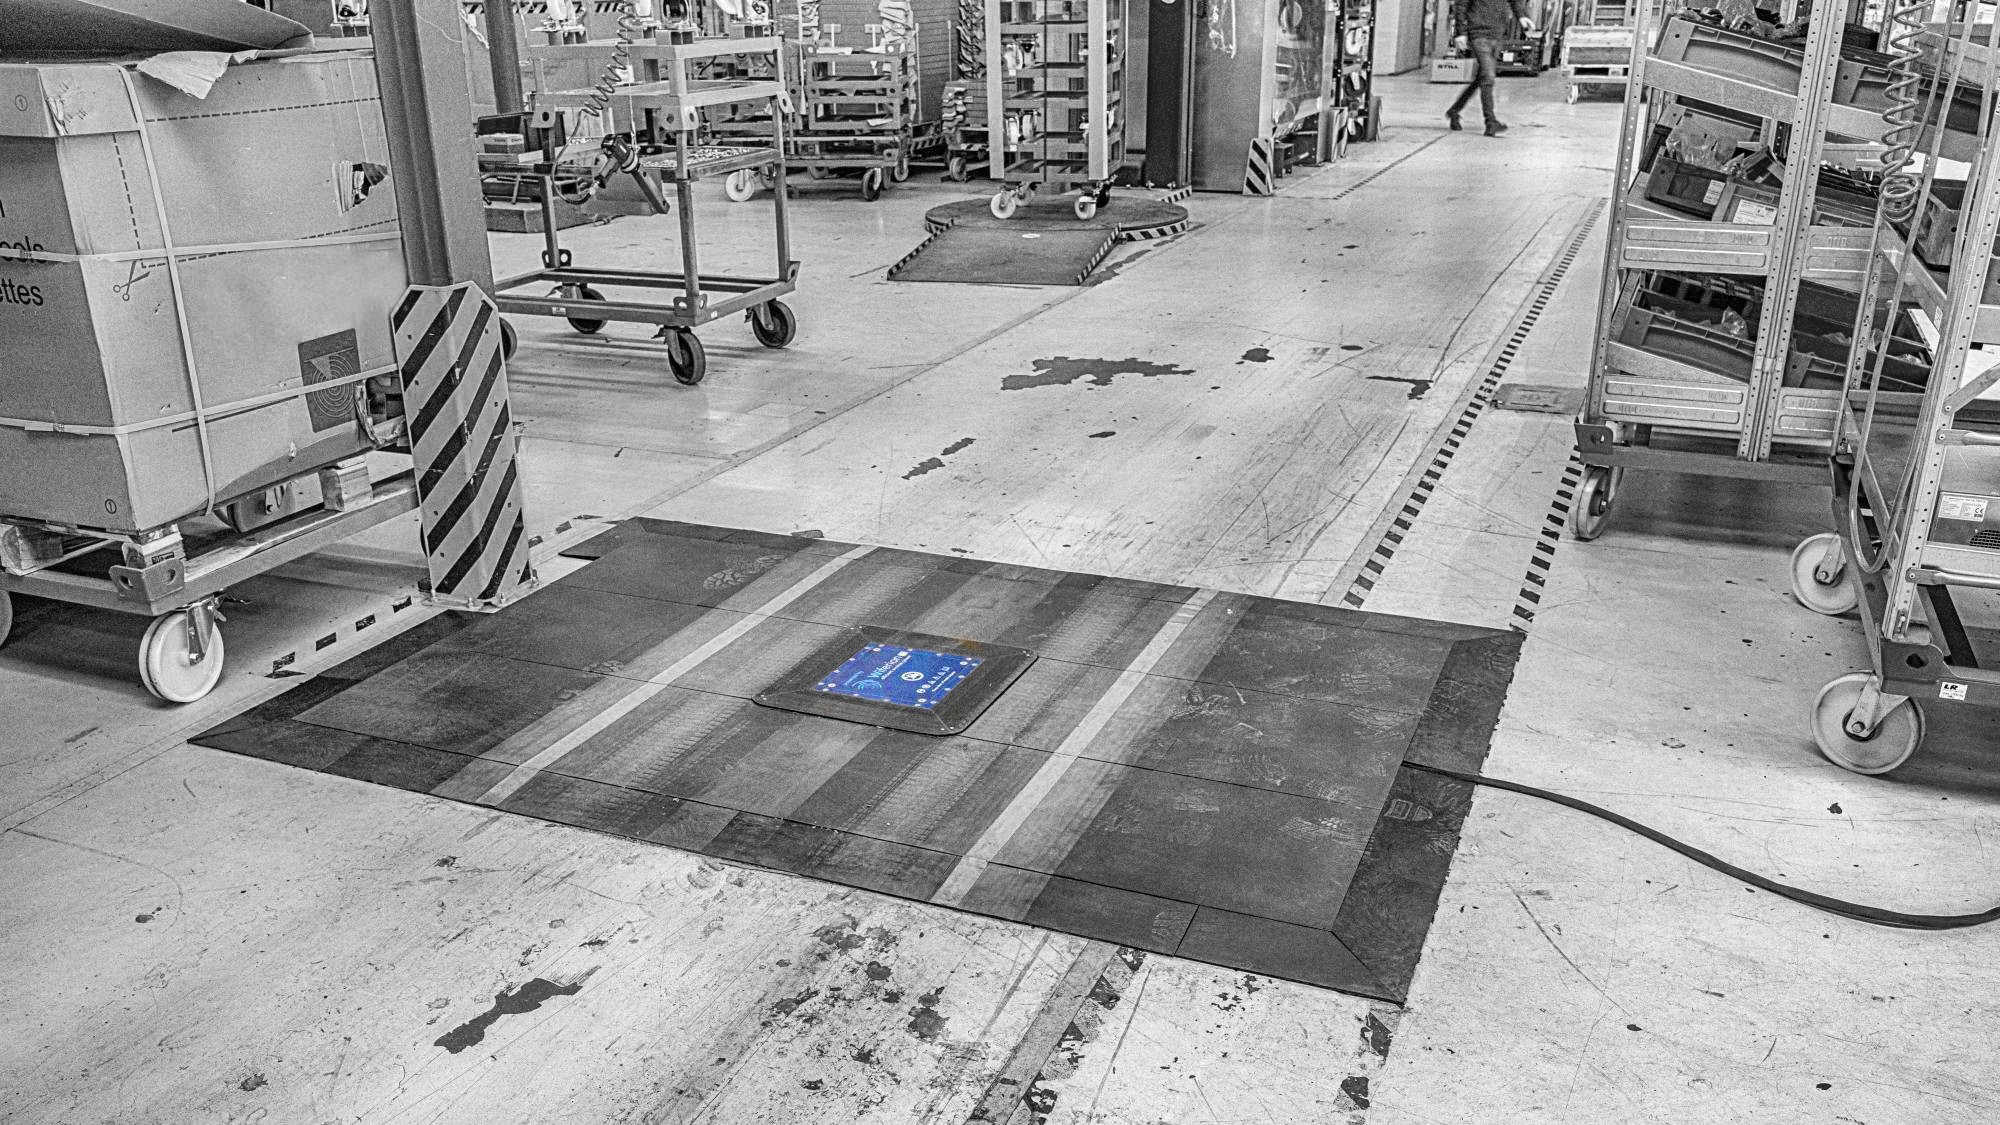 powertiles floor ground induktiv charging - forklifts - ladesystem - charging system